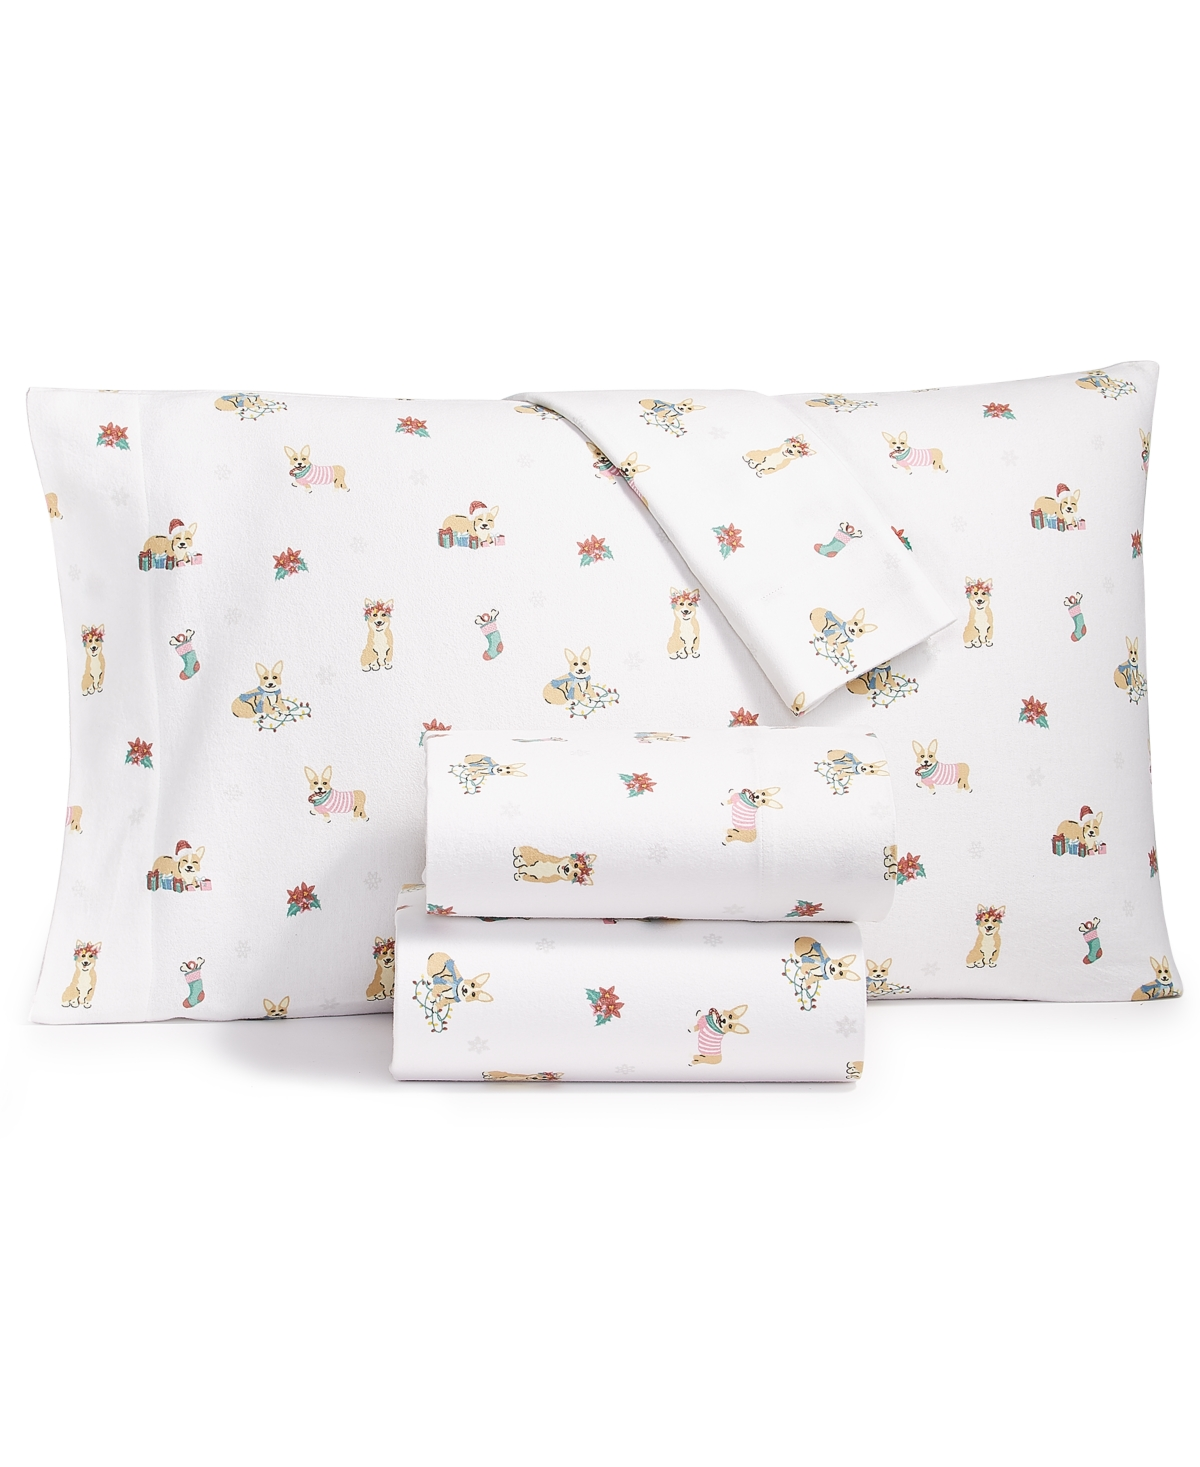 Whim by Martha Stewart Collection Flannel Cotton 4-Pc. Full Sheet Set, Created for Macy's Bedding